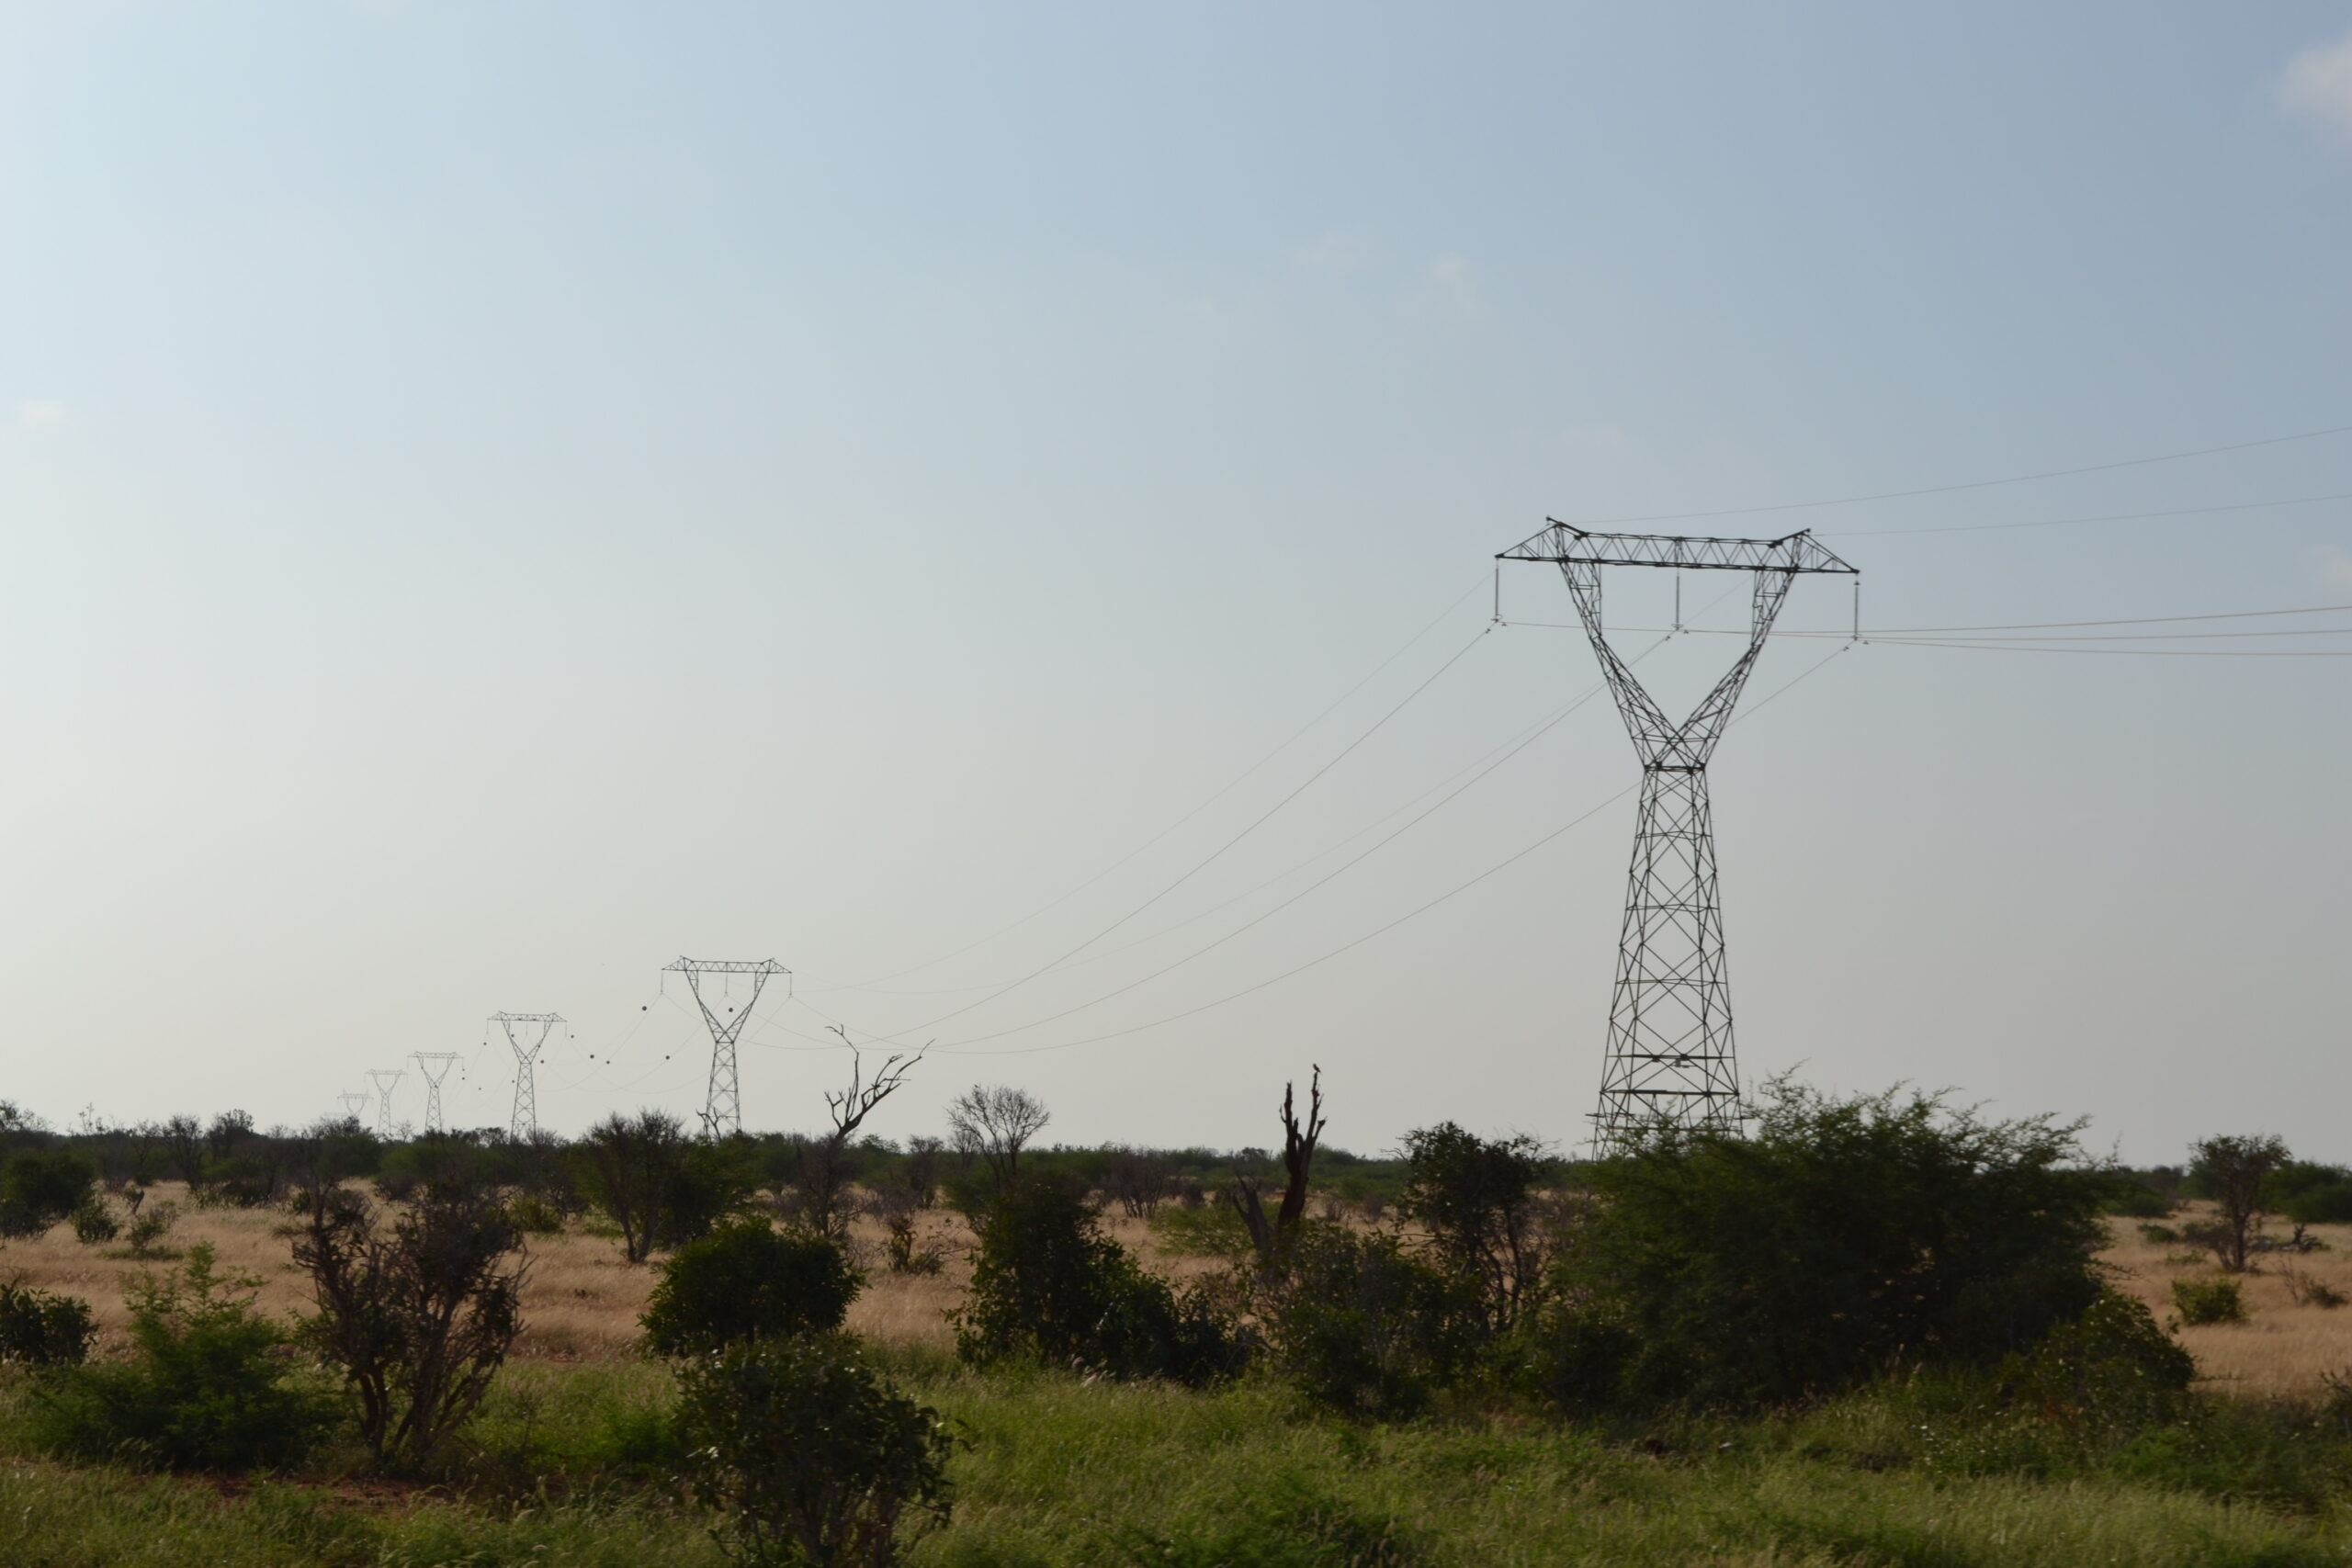 Africa Development Bank blacklists Chinese company building Kenyan power project